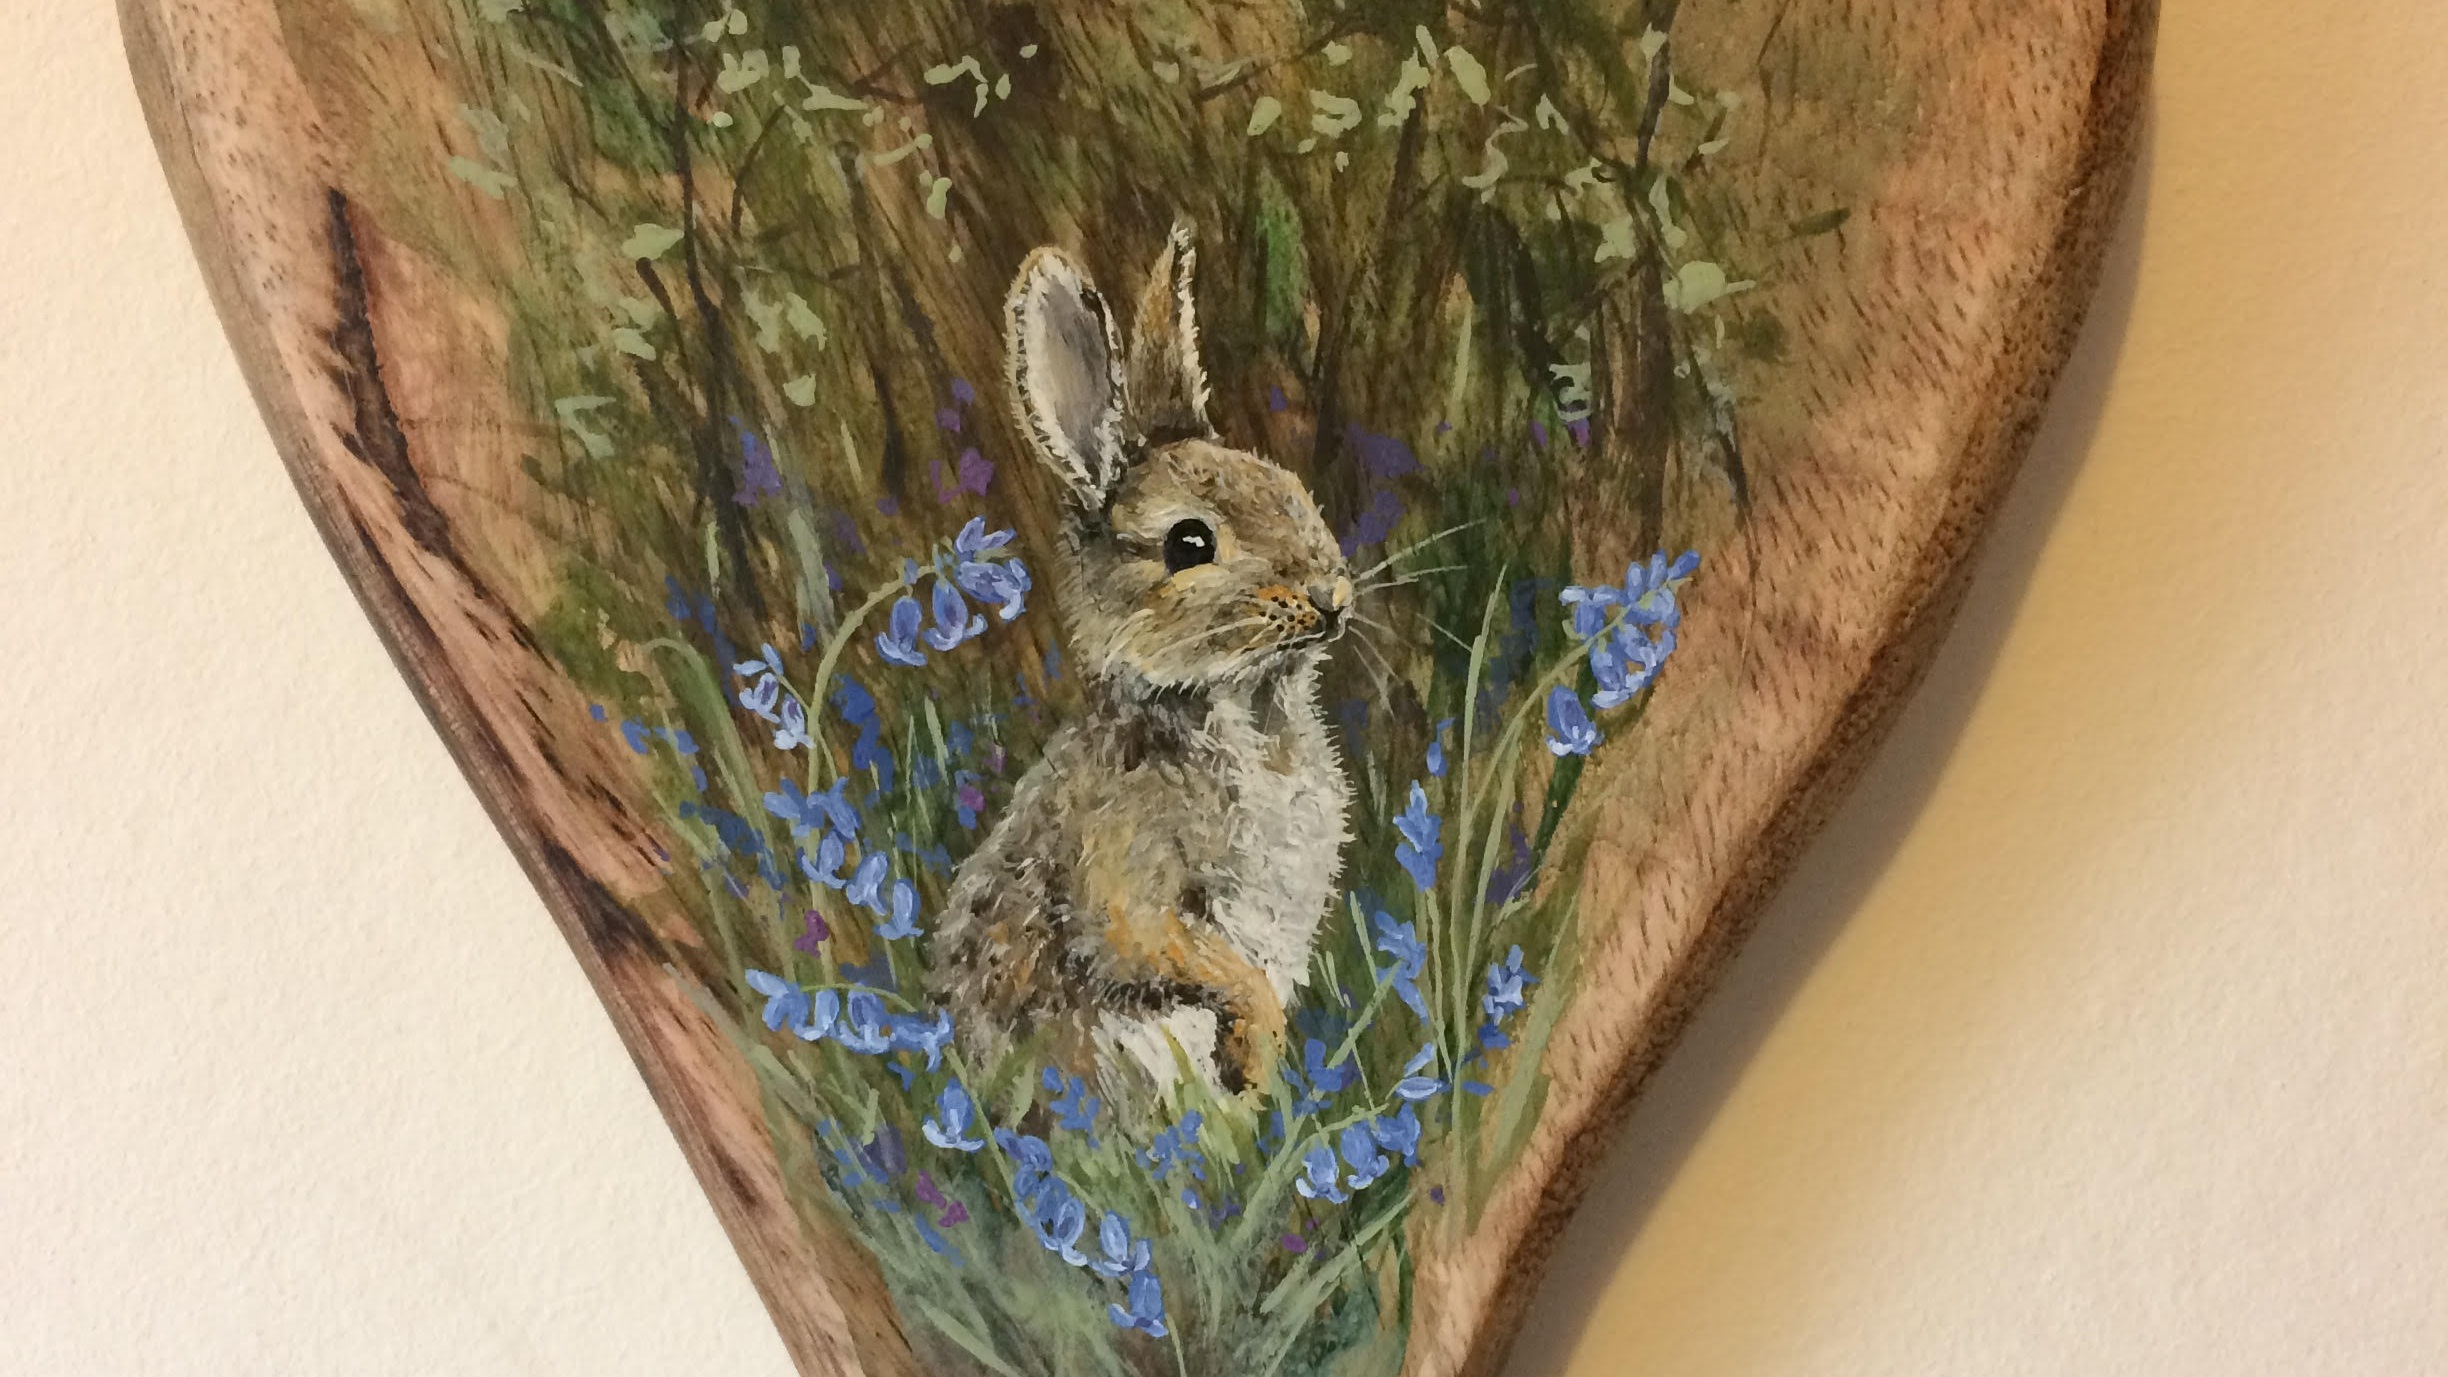 Faye Dunwoodie - Country cuties by Faye. Lovely hand painted pieces of art capturing our lovely wildlife on wood, slate and canvases. Great idea for that unique gift.